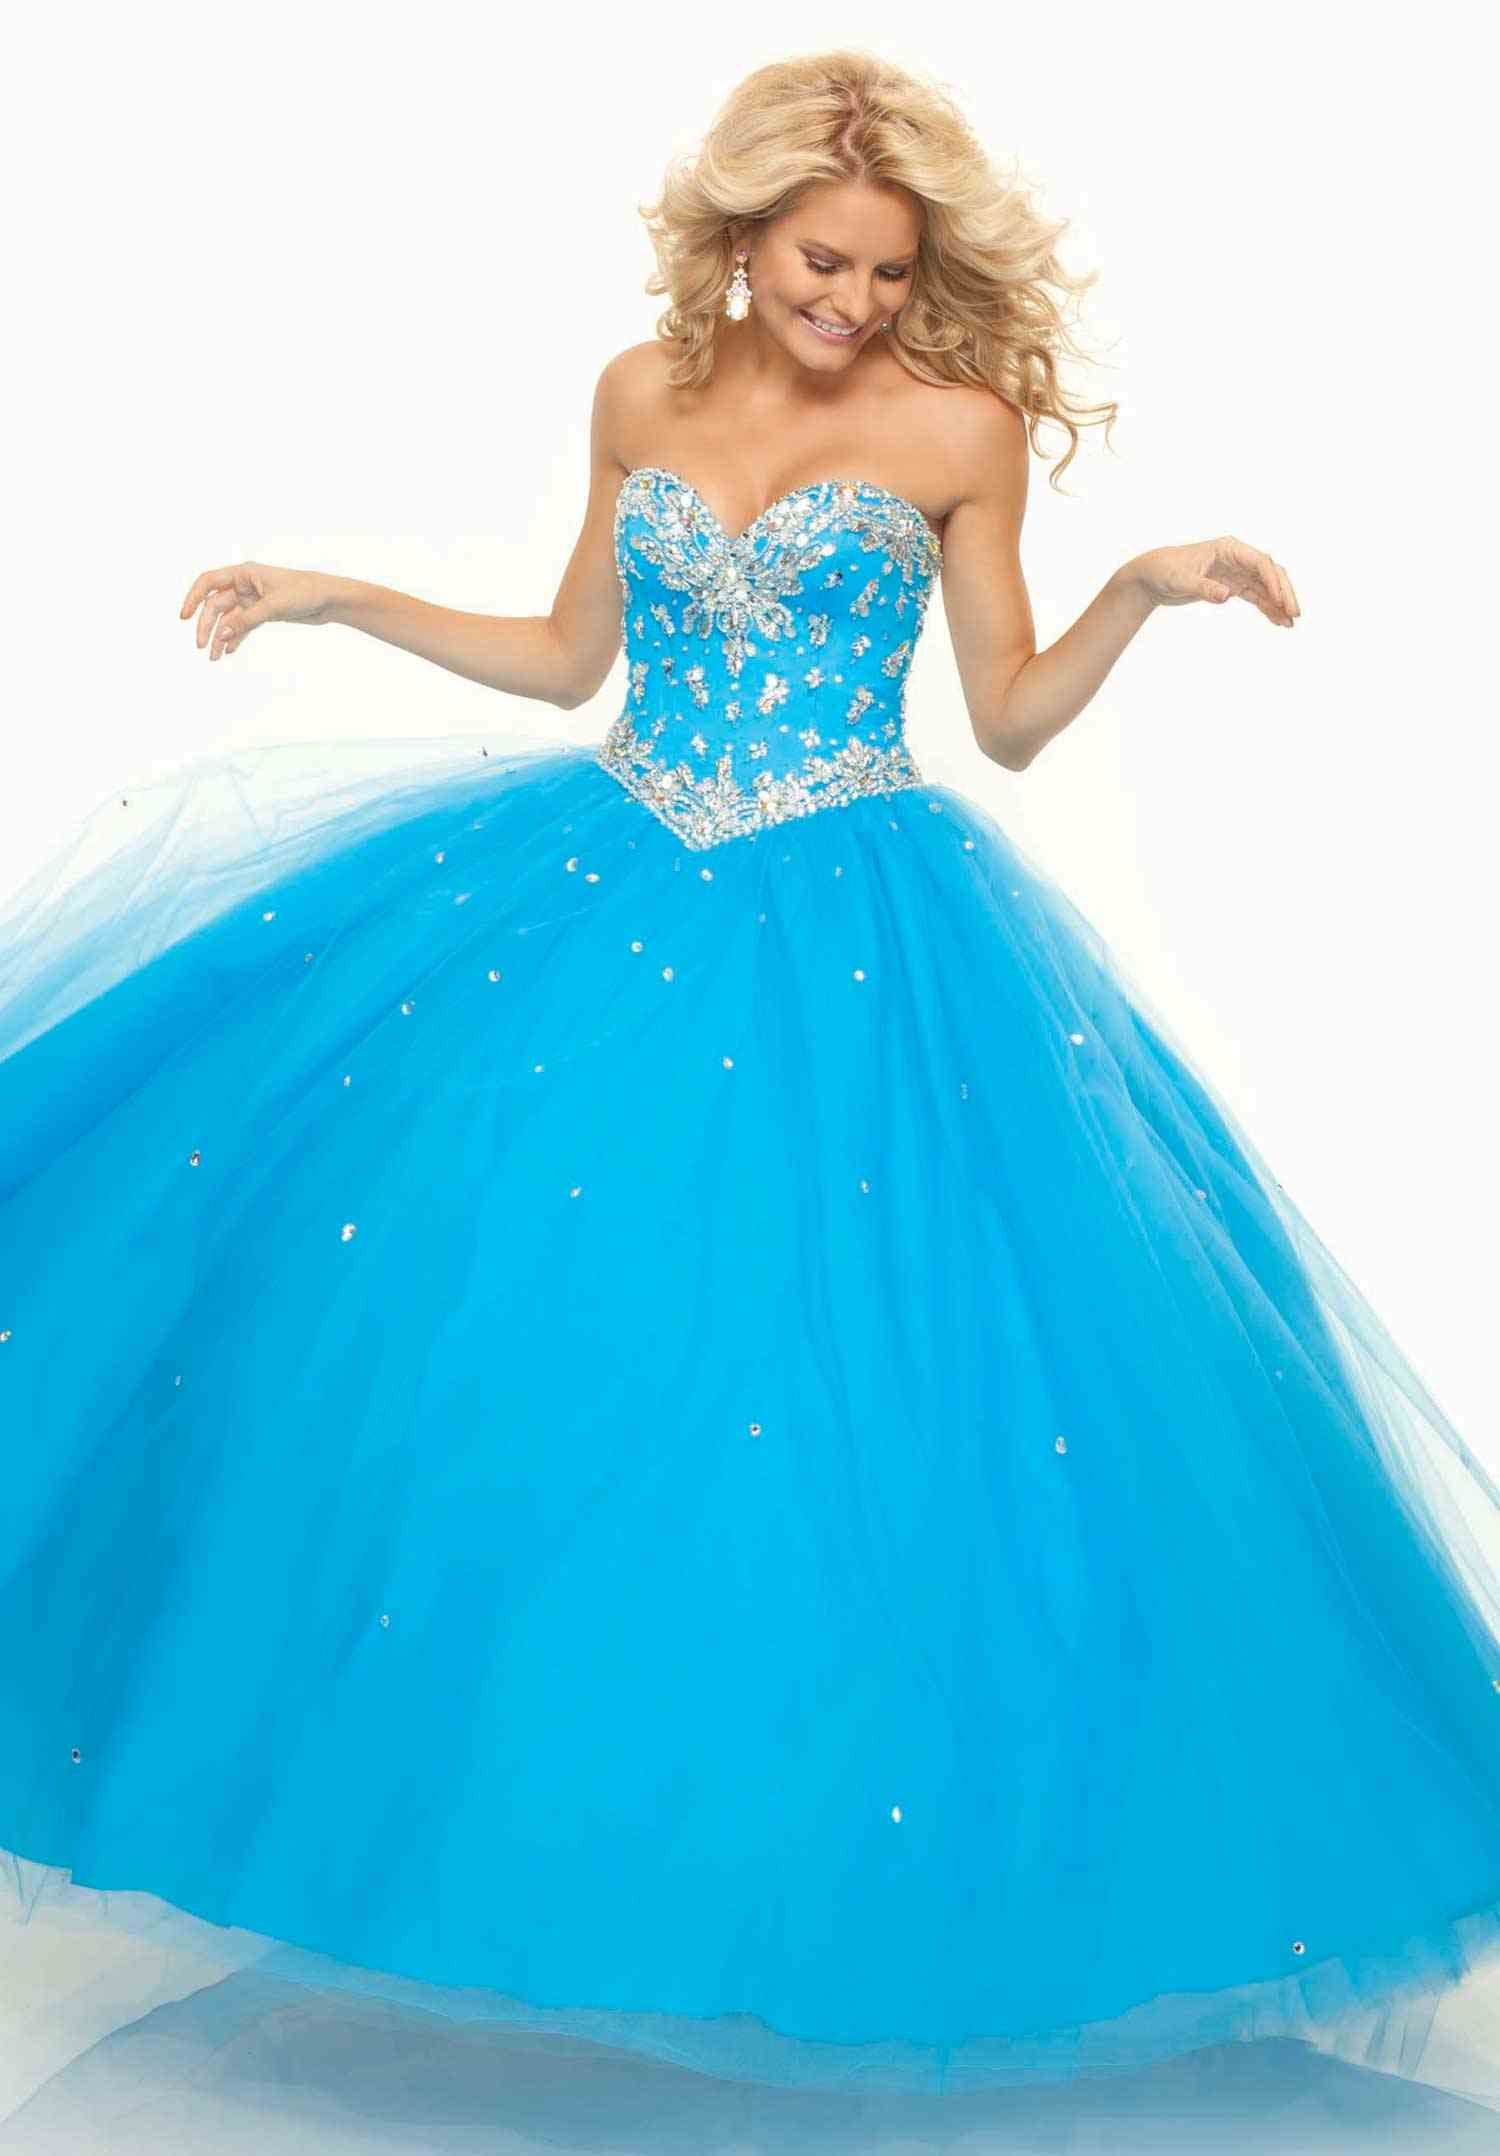 cinderella ball gown prom dresses | Cinderella prom dresses ...